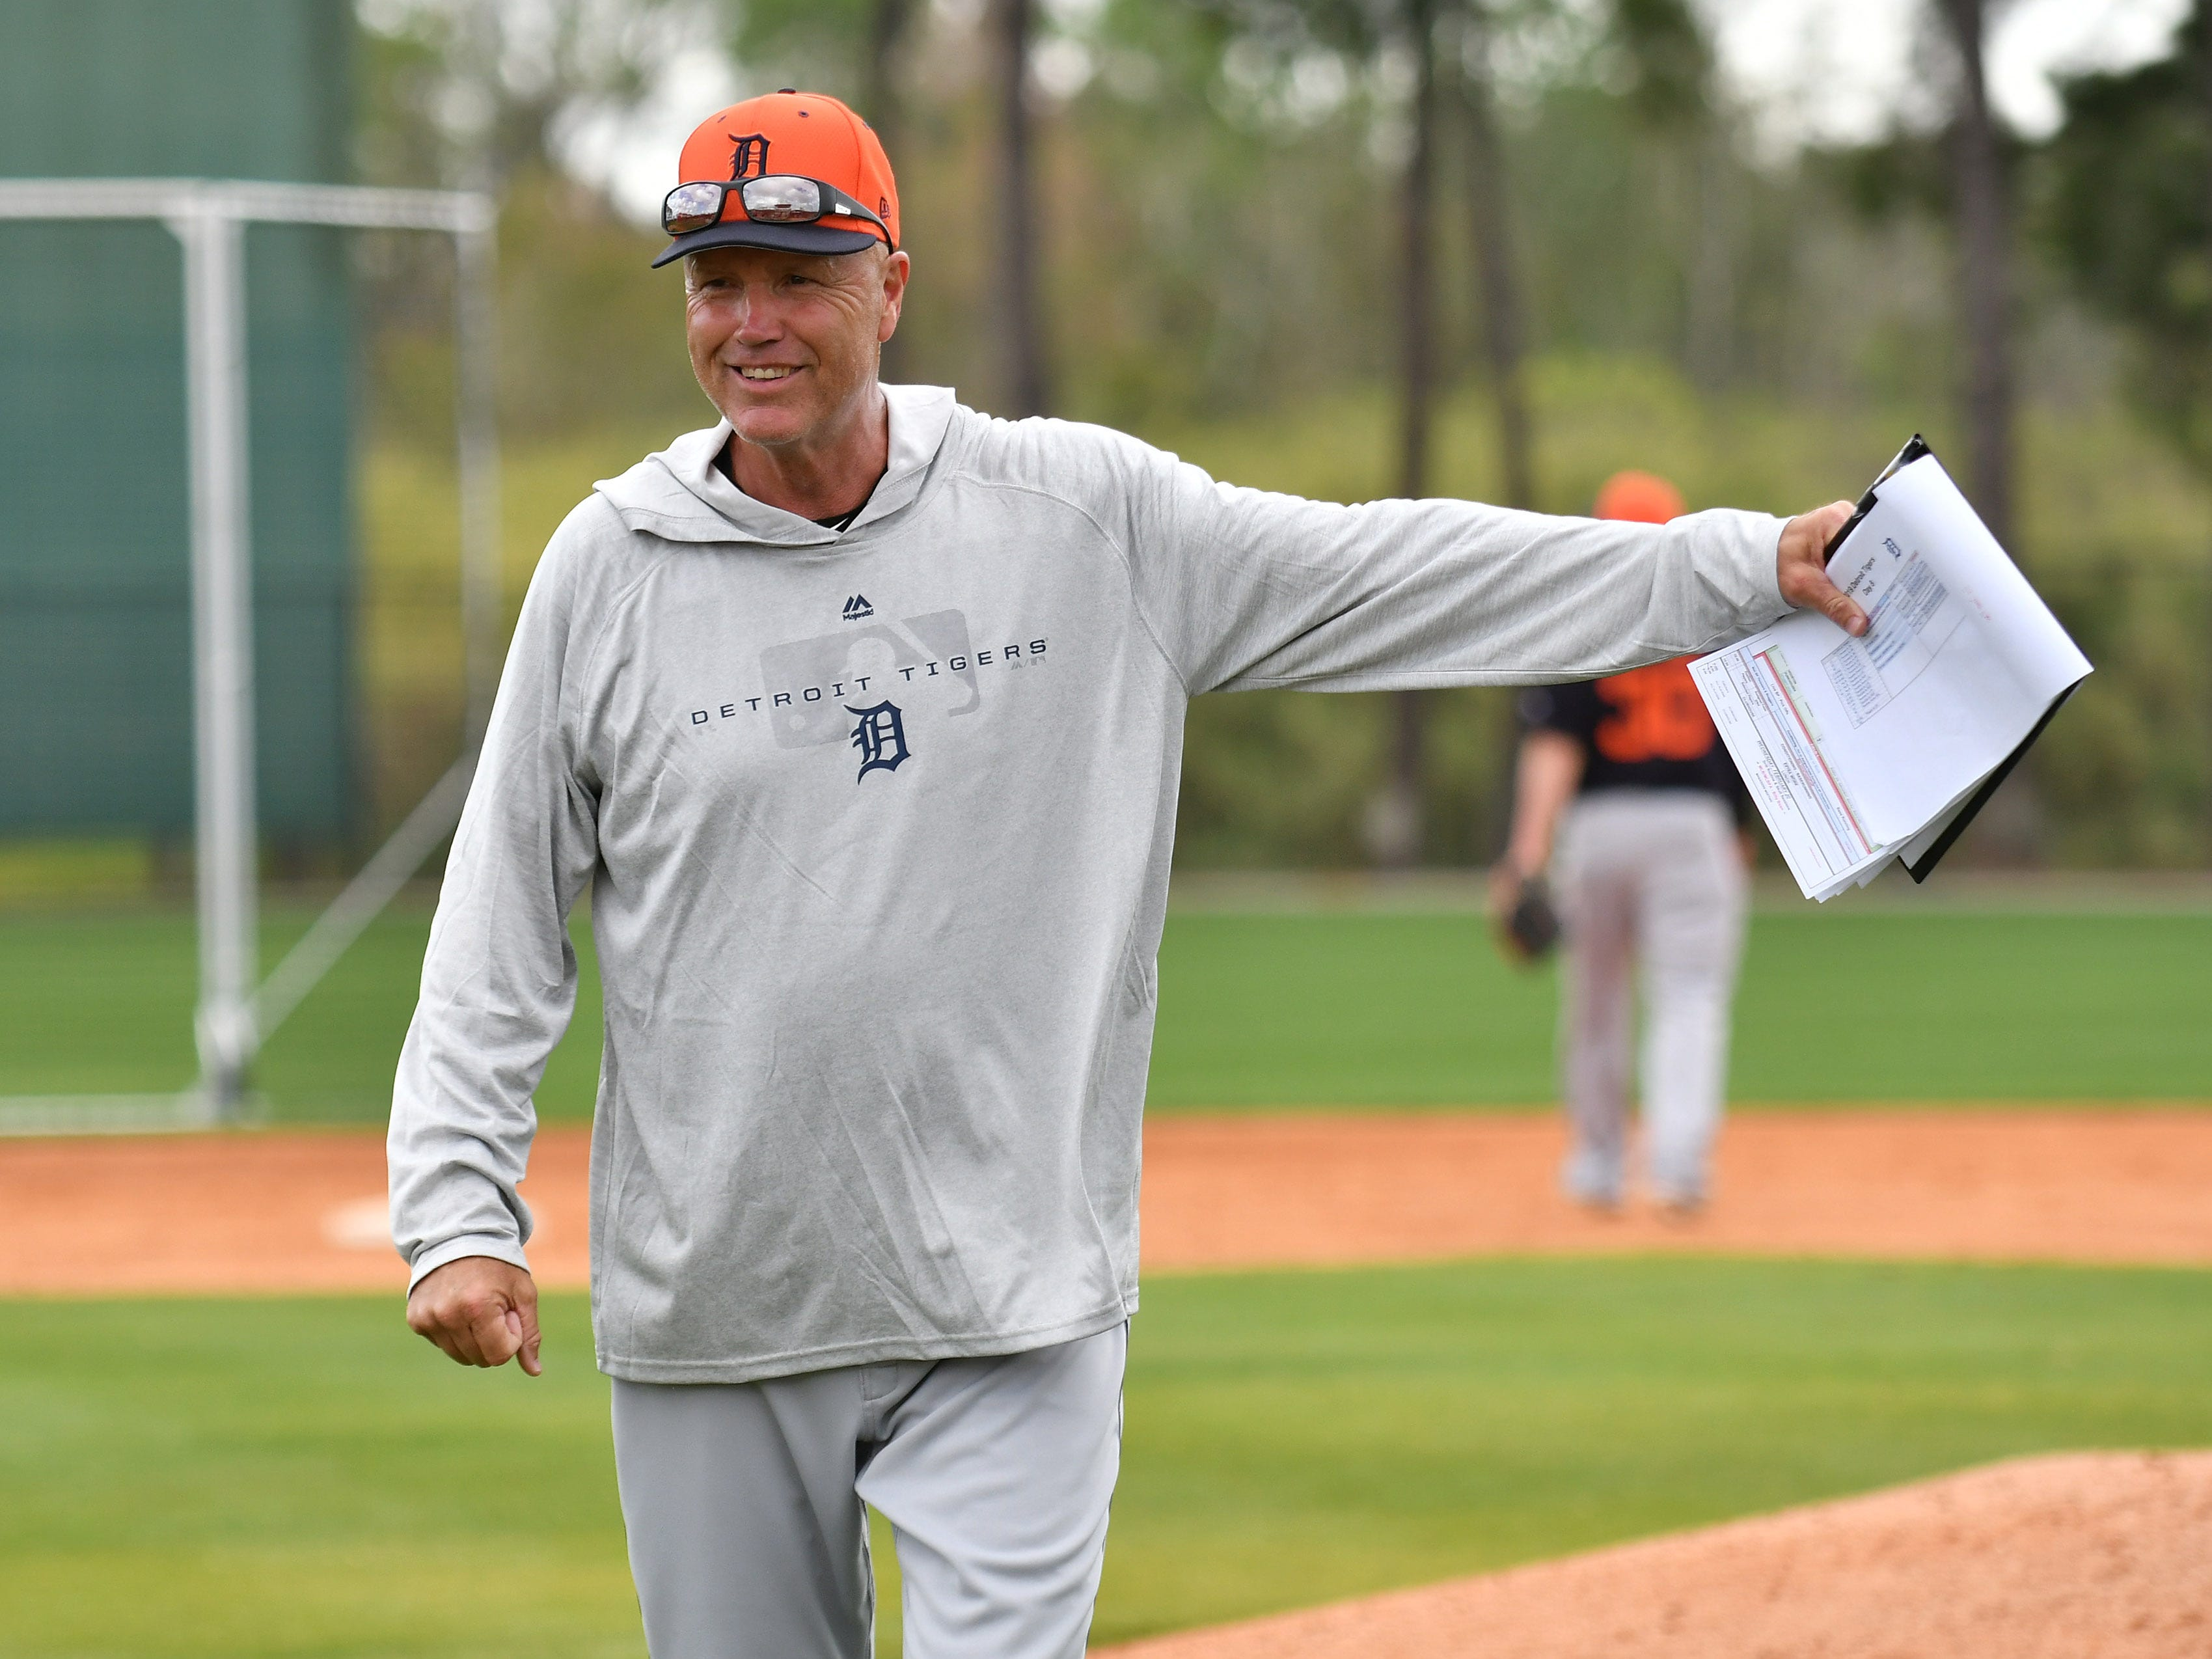 Tigers bench coach Steve Liddle gives instructions during infield drills.